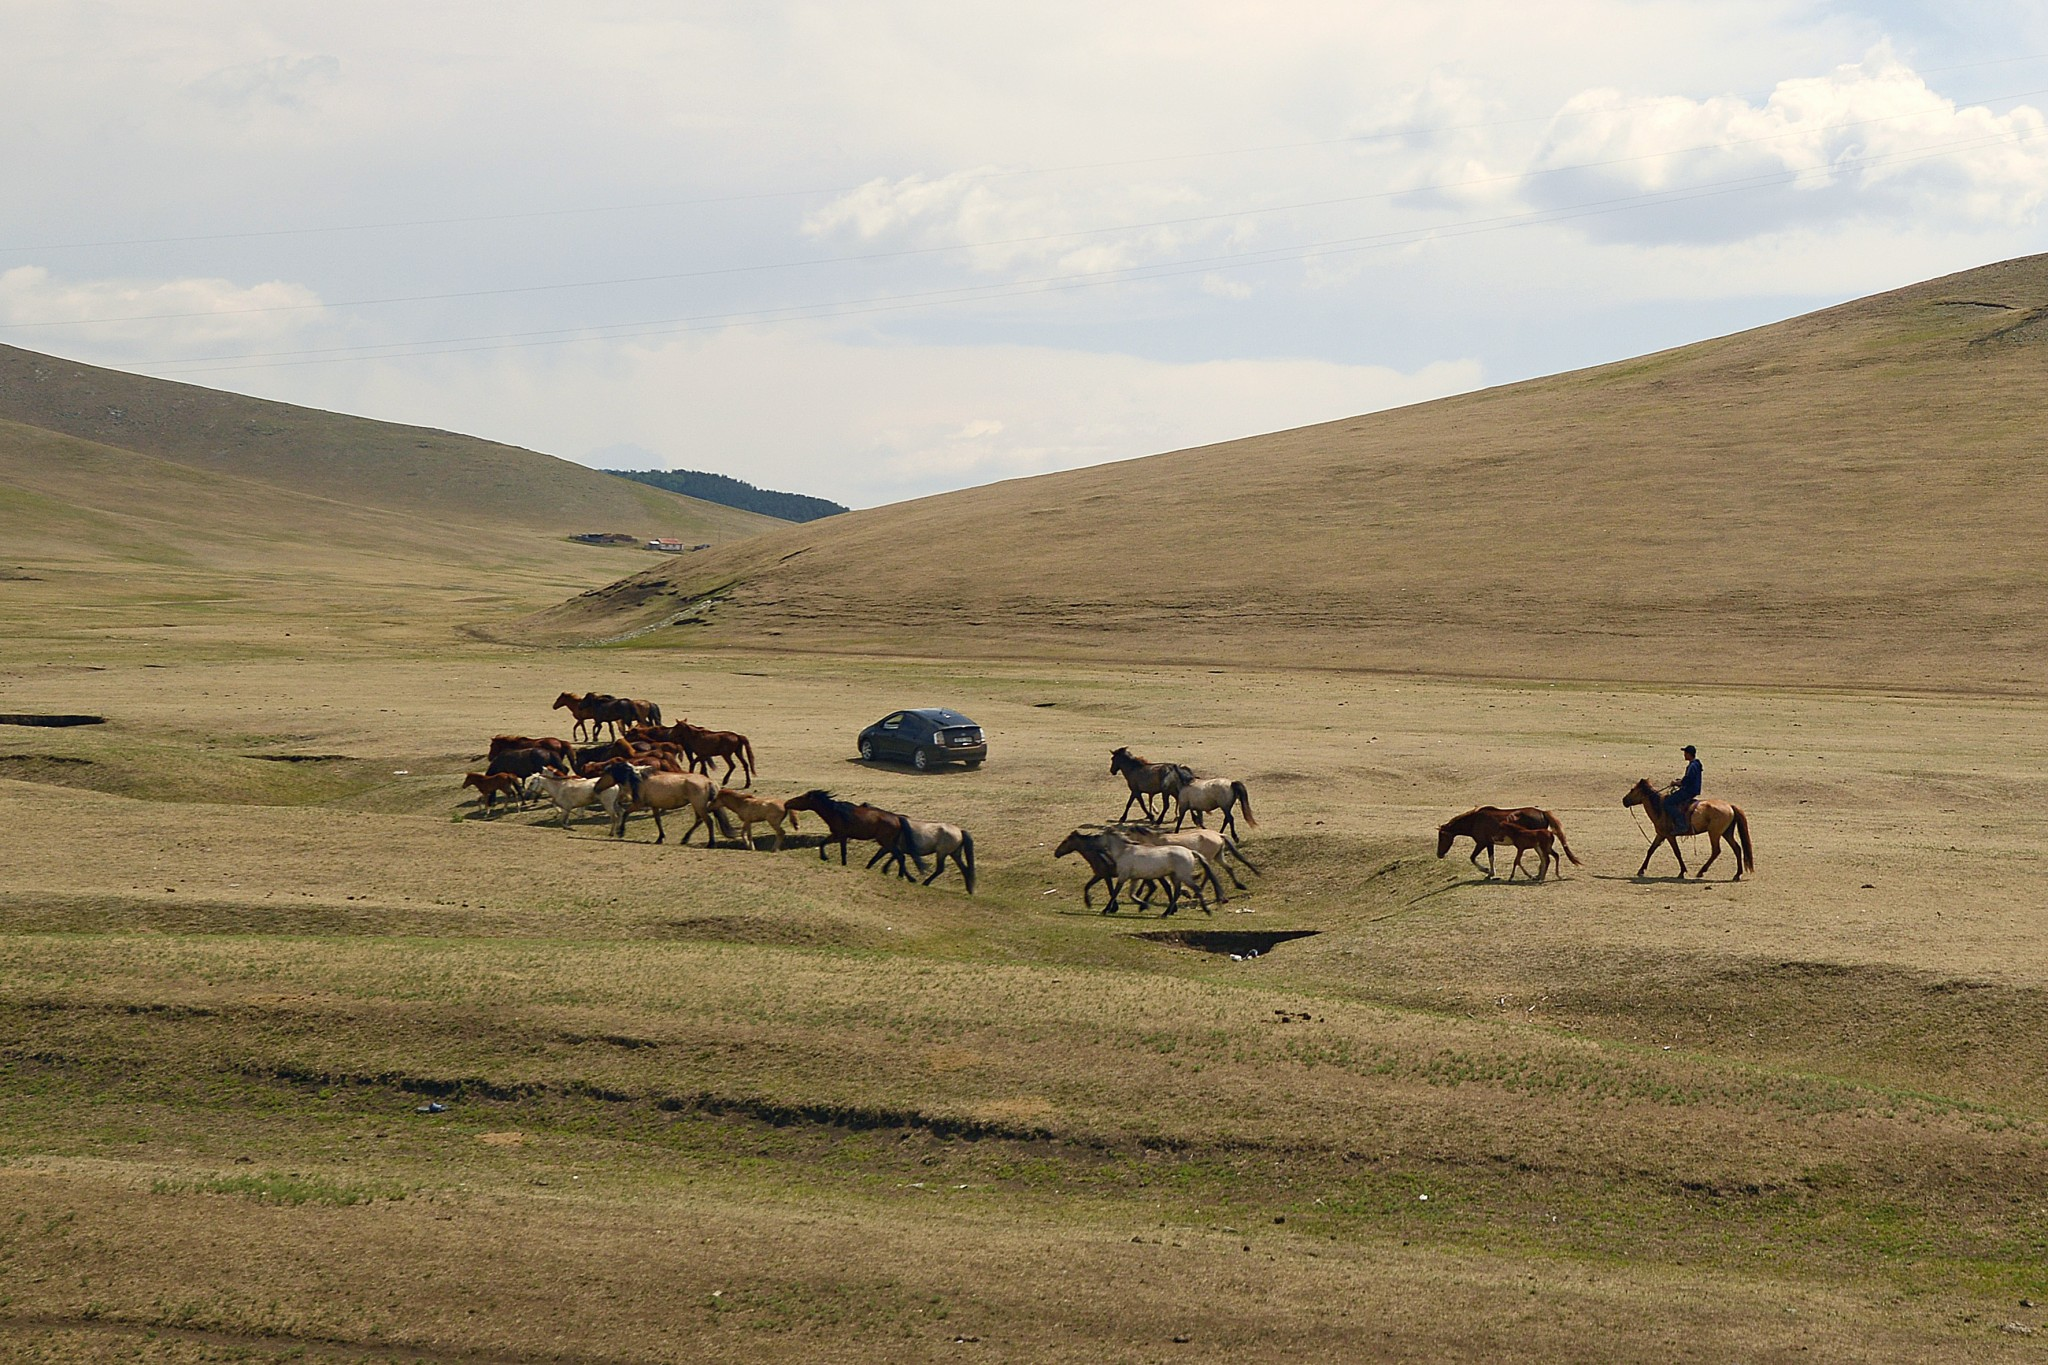 Mongolie68